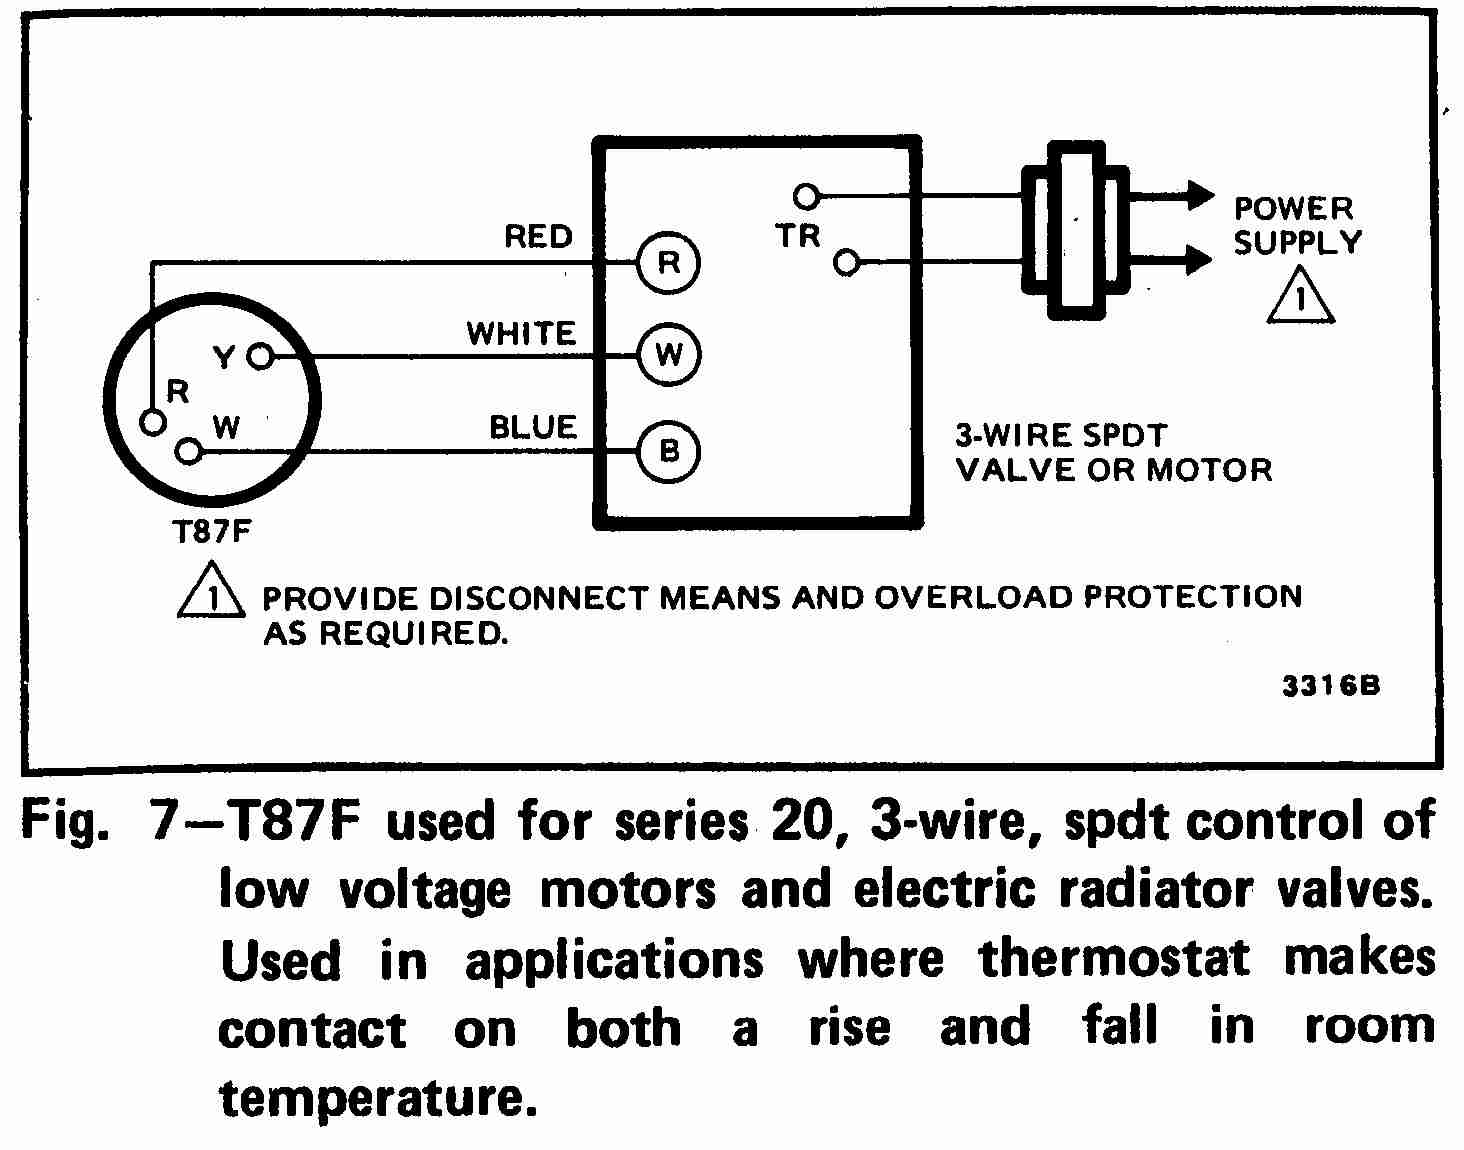 TT_T87F_0002_3W2_DJF room thermostat wiring diagrams for hvac systems fcu wiring diagram at alyssarenee.co